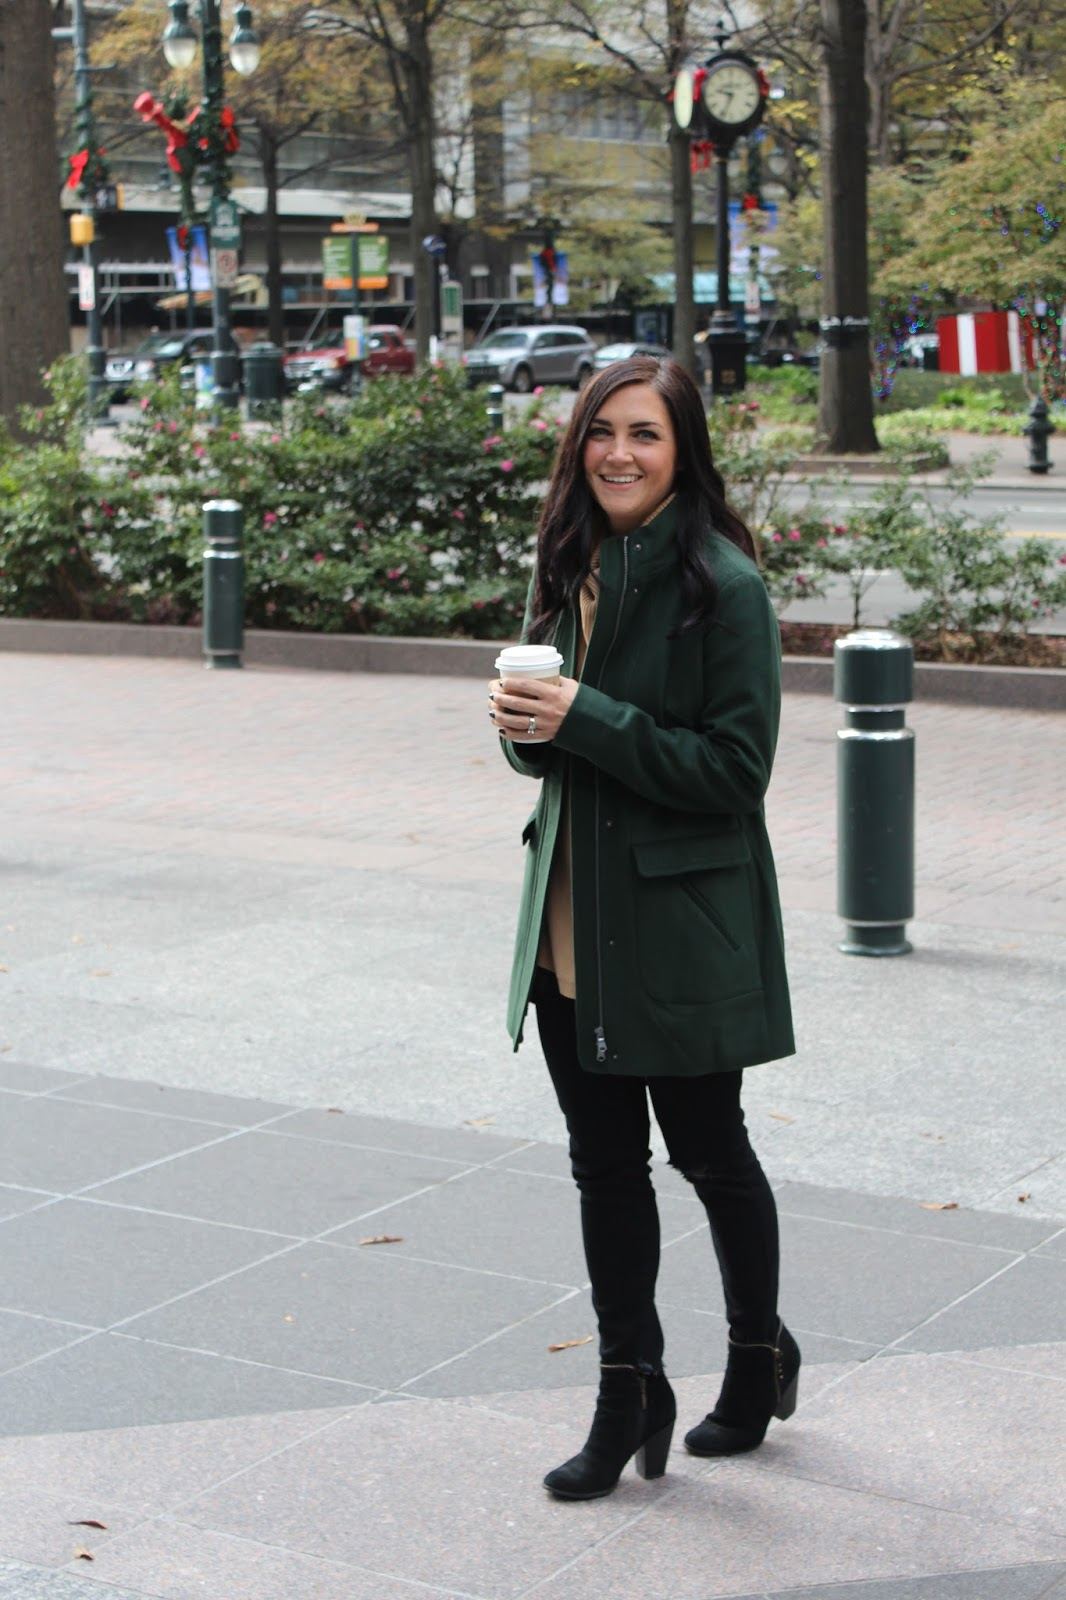 J Jill Hunter green coat | Cowl Neck Nordstrom Sweater | Distressed Black Denim